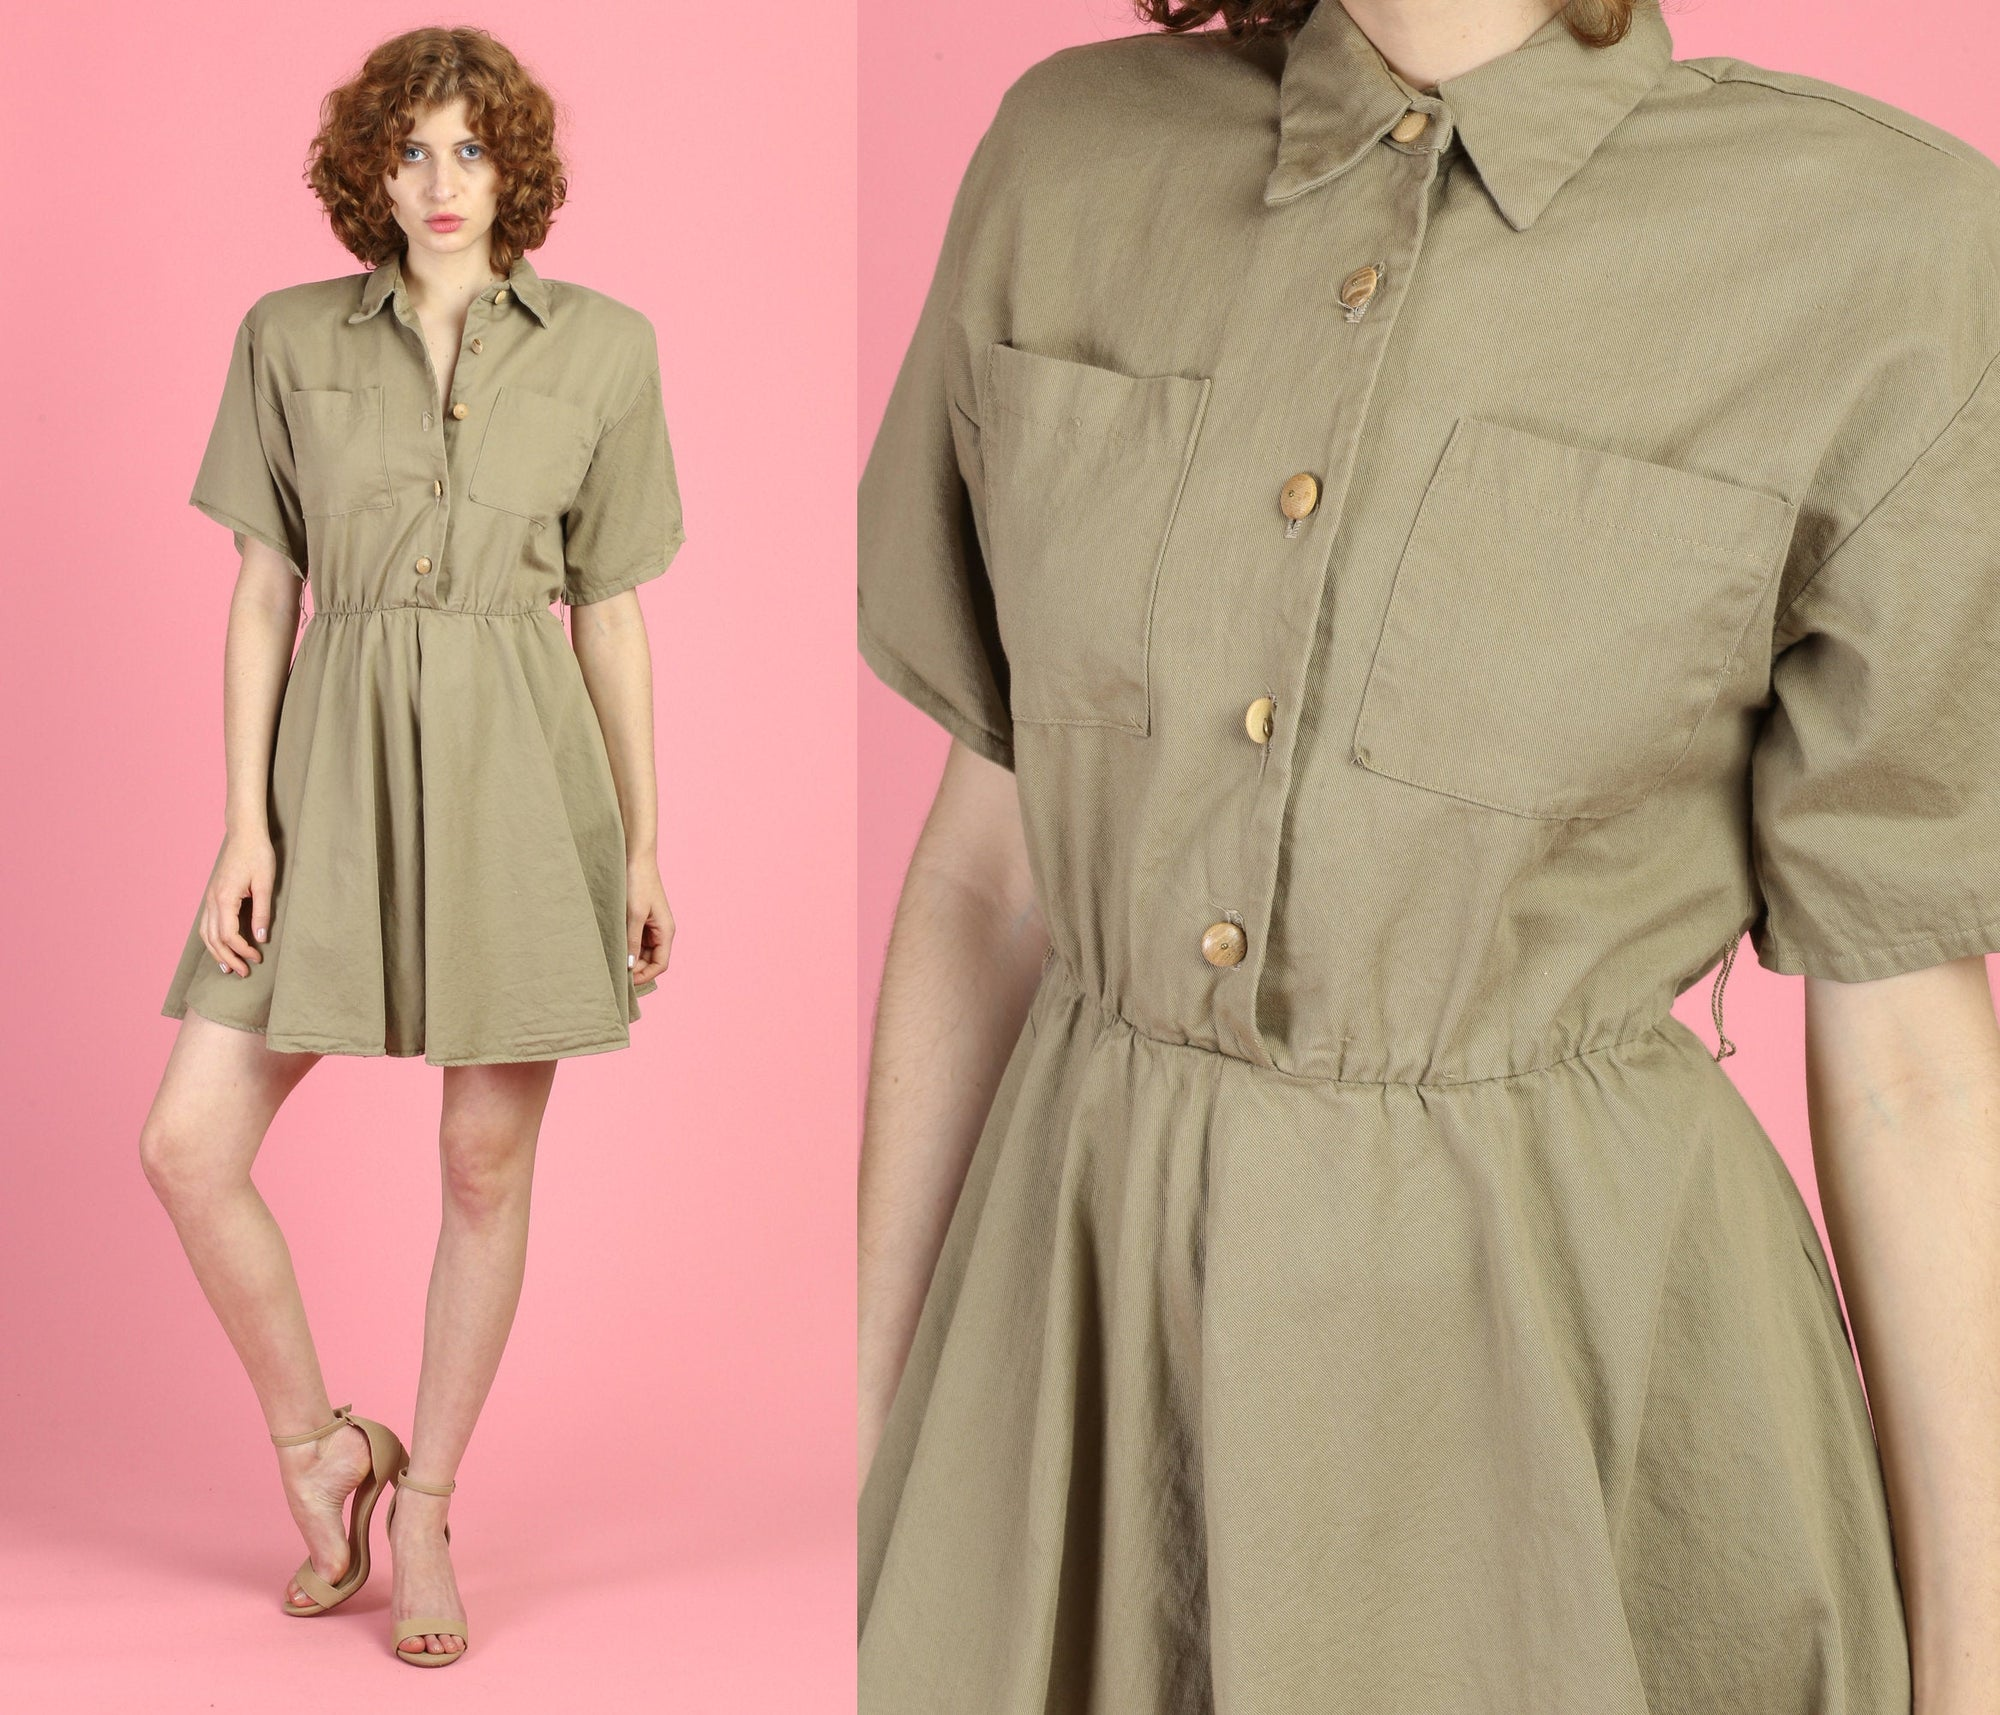 90s Khaki Cargo Dress - Small